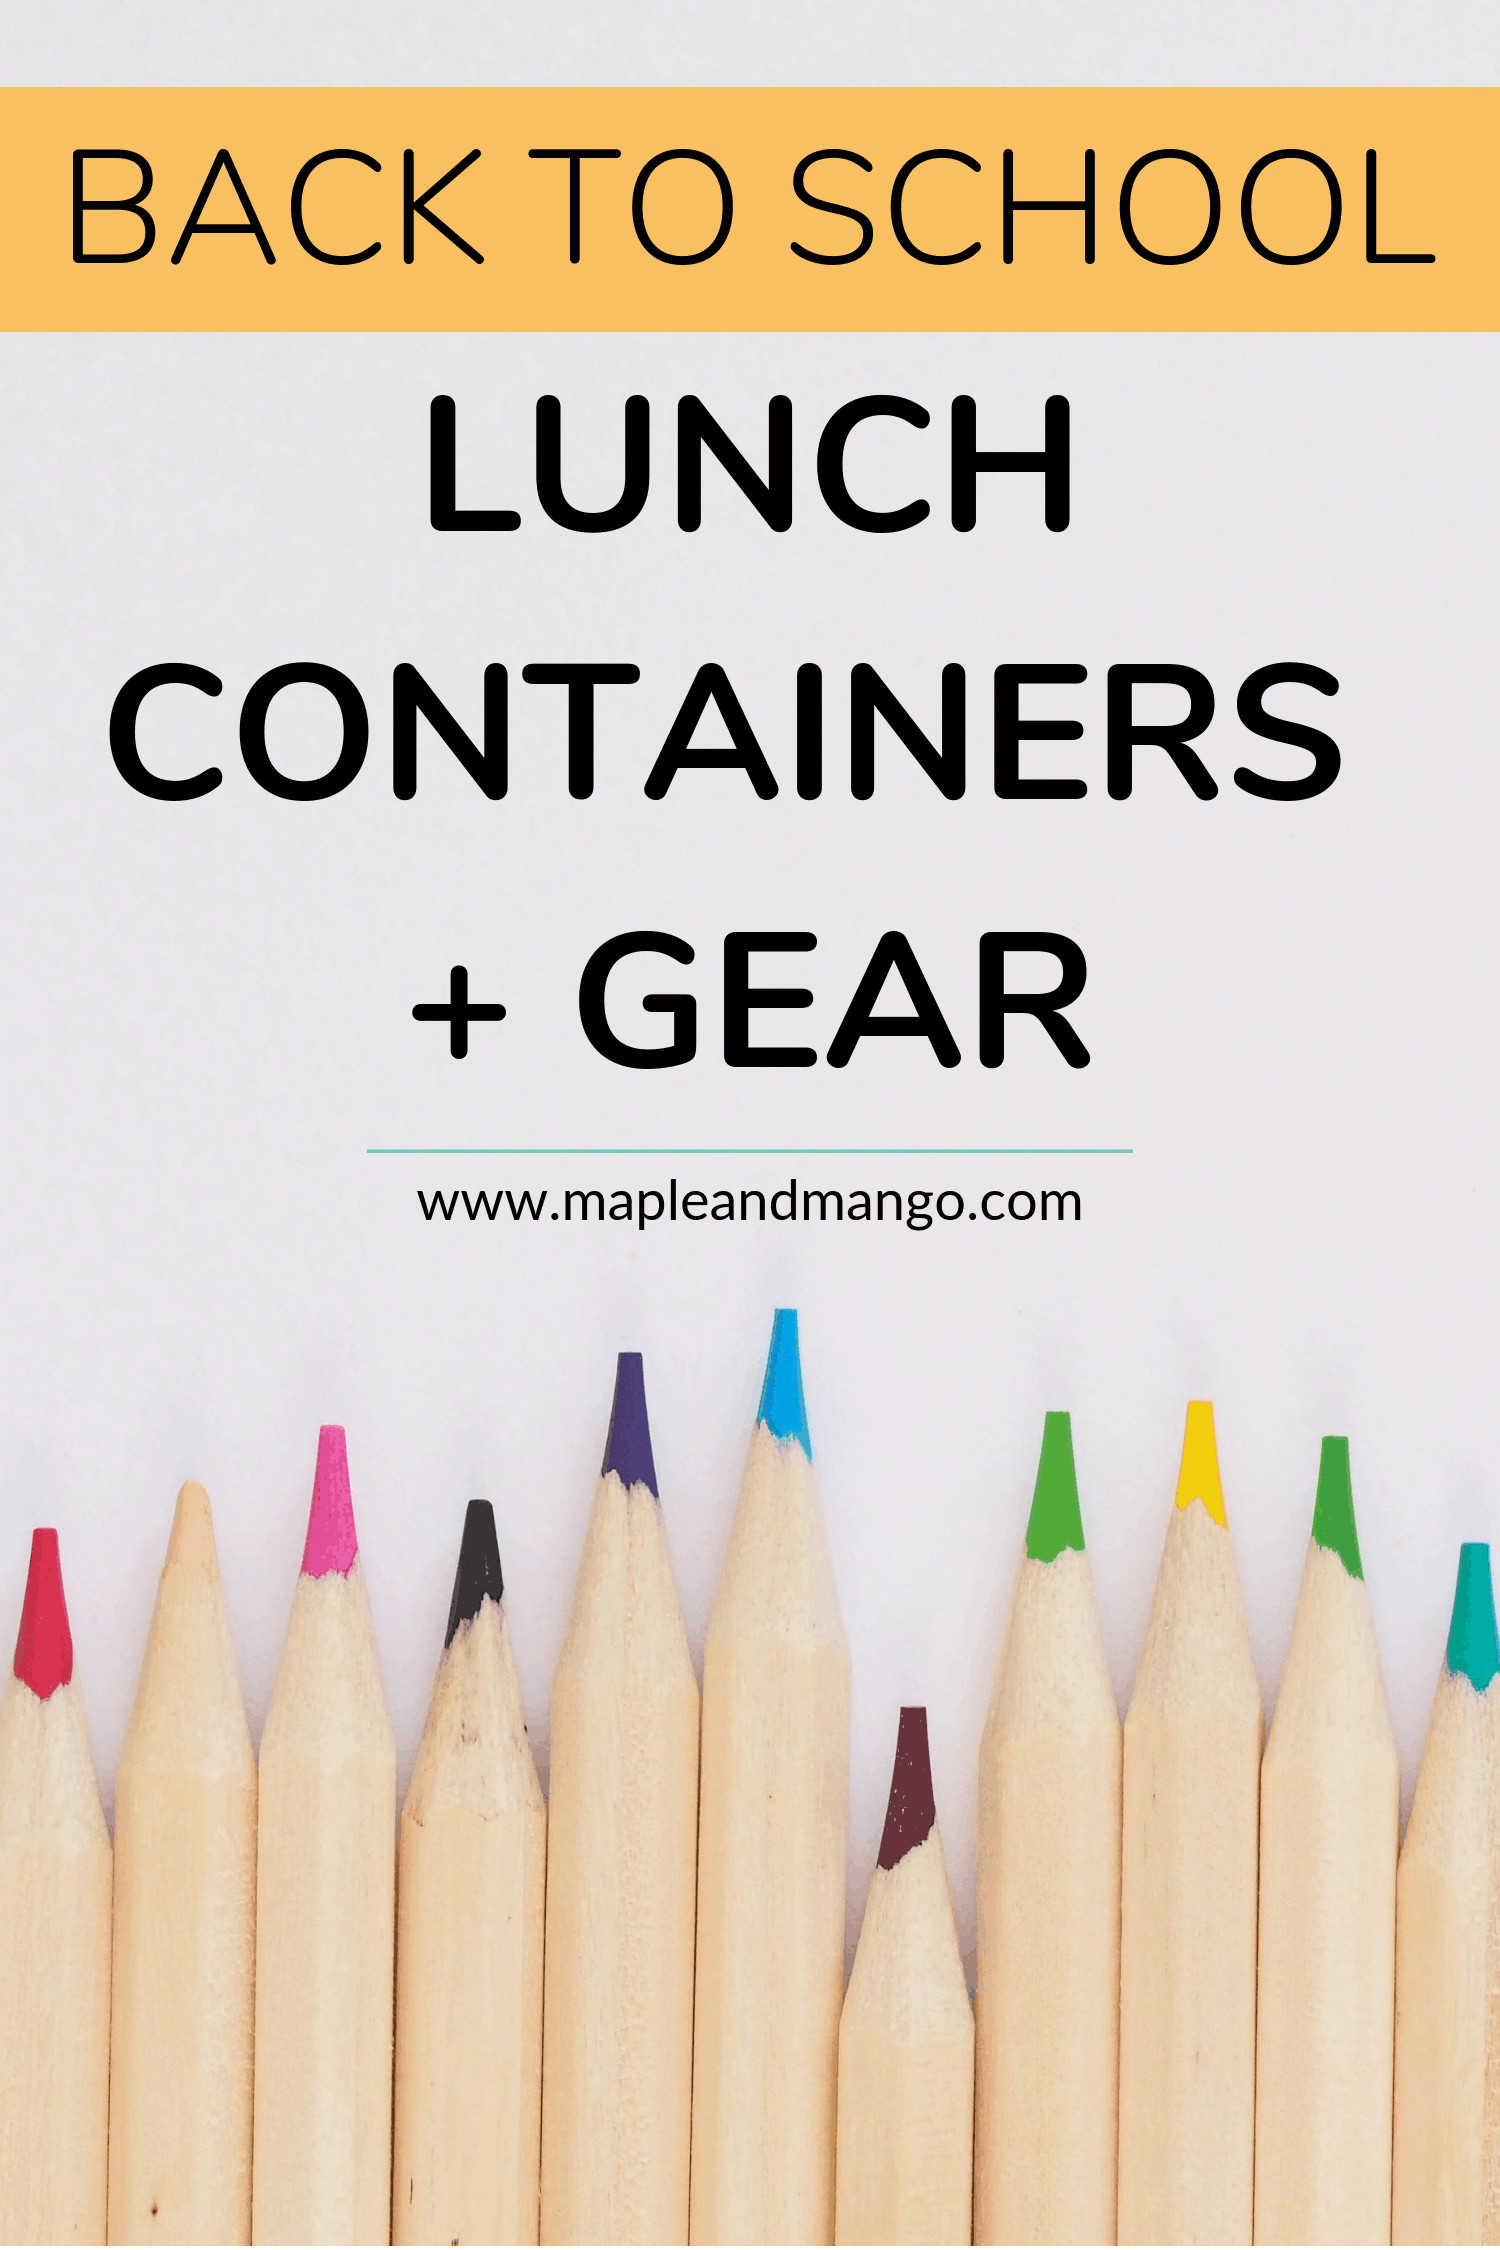 Coloured pencil crayons on a white background with text overlay that says: Back To School Lunch Containers + Gear